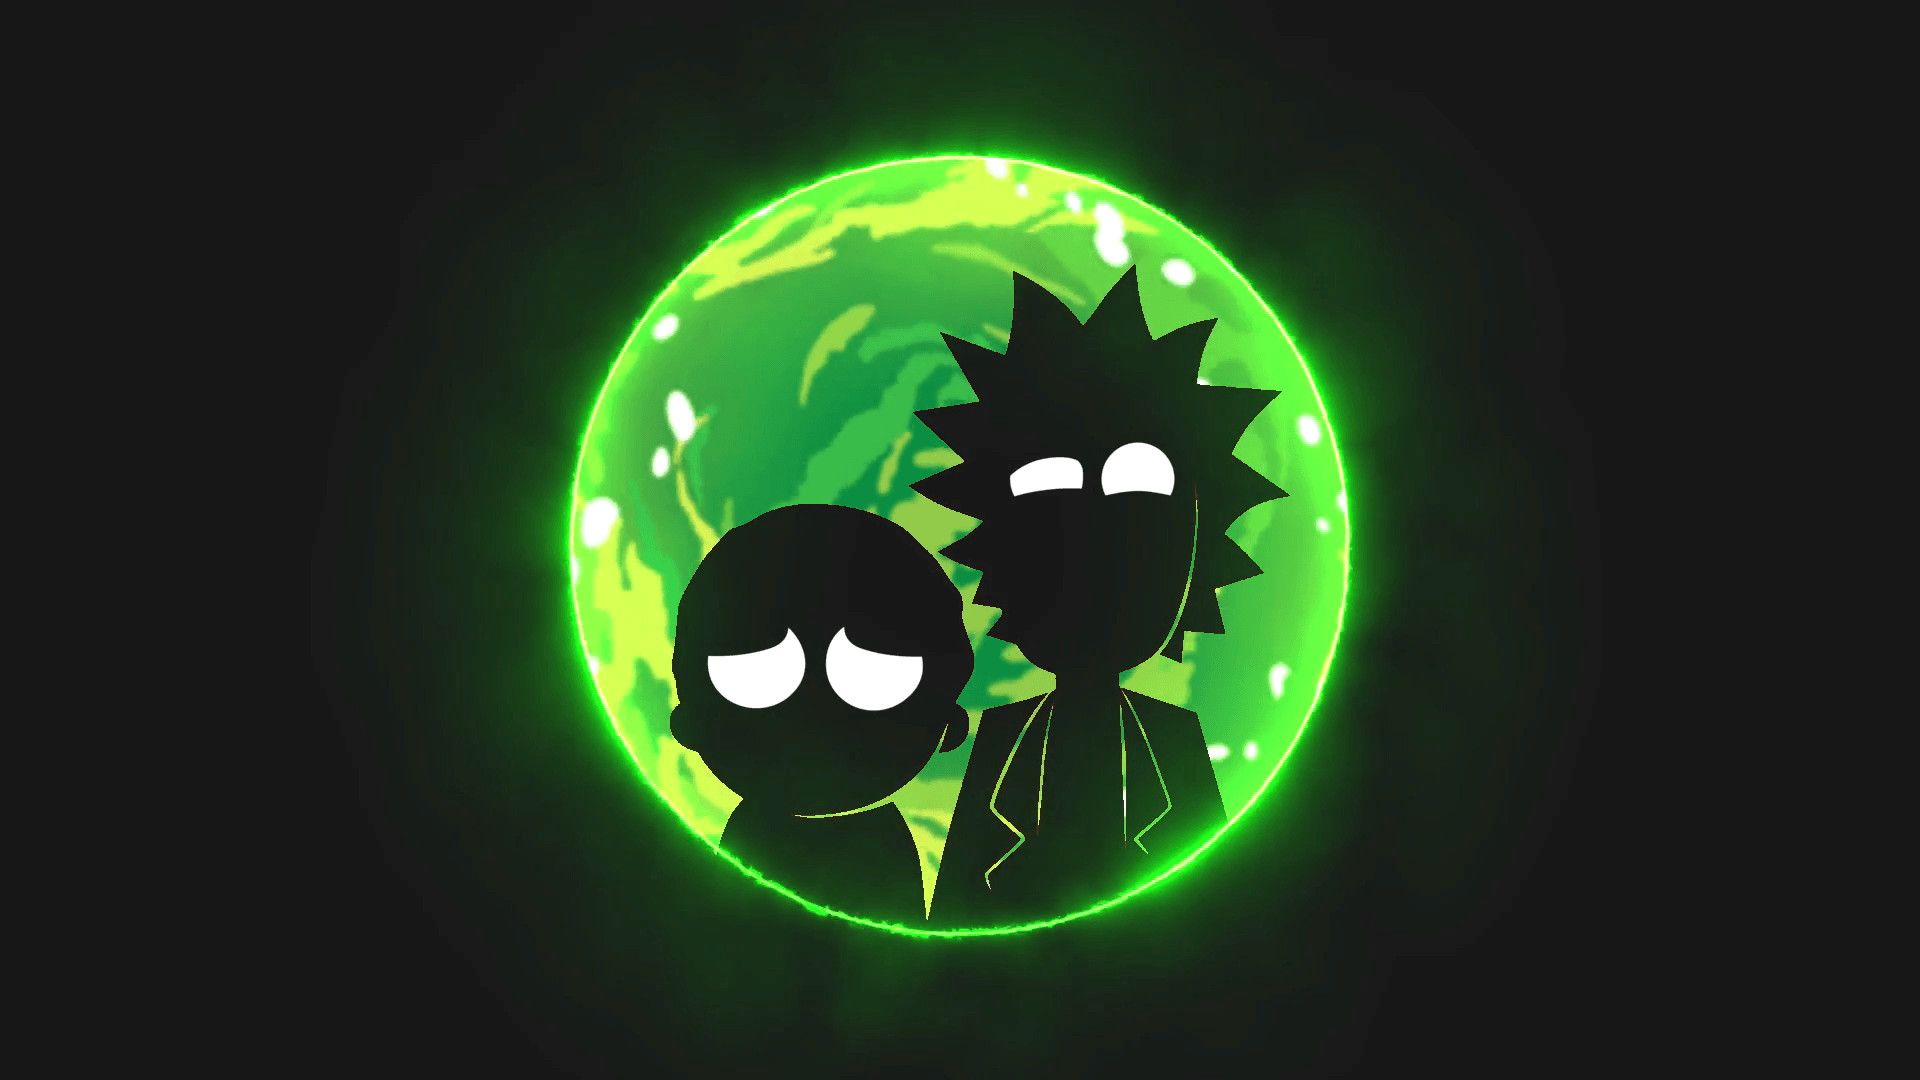 Rick And Morty Wallpaper Lovely Rick And Morty Pics Hd